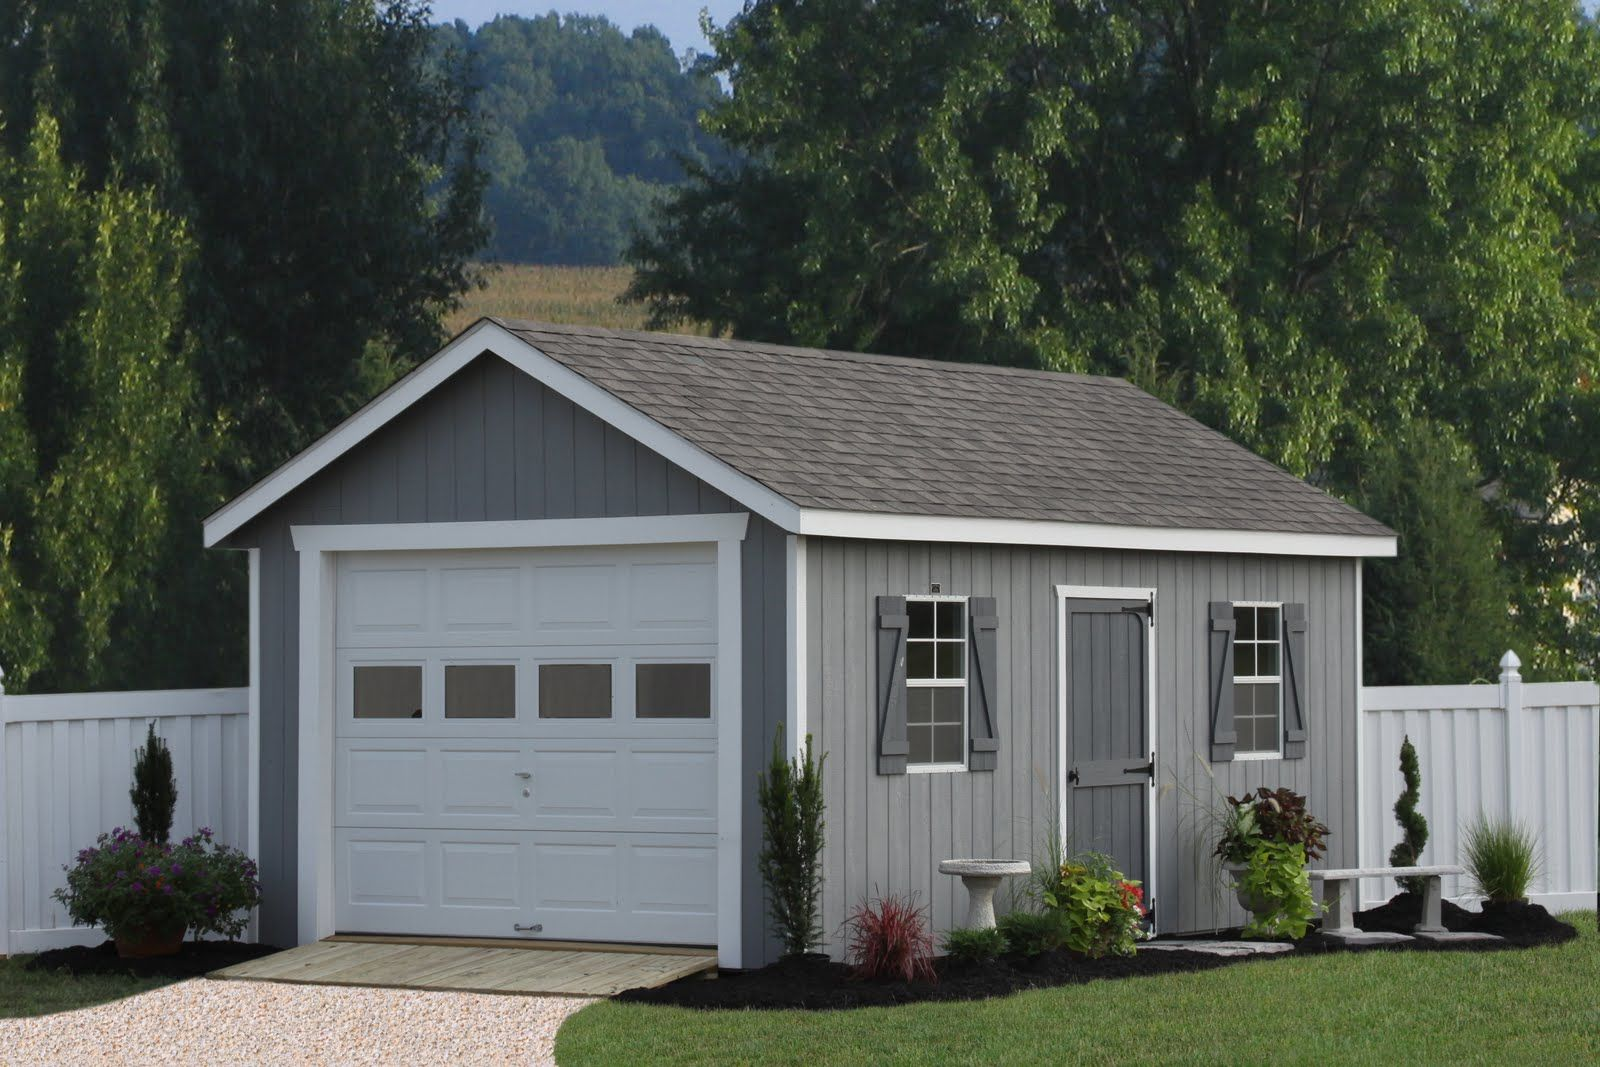 Add on garage plans 12x20 classic one car garage for 8 car garage plans